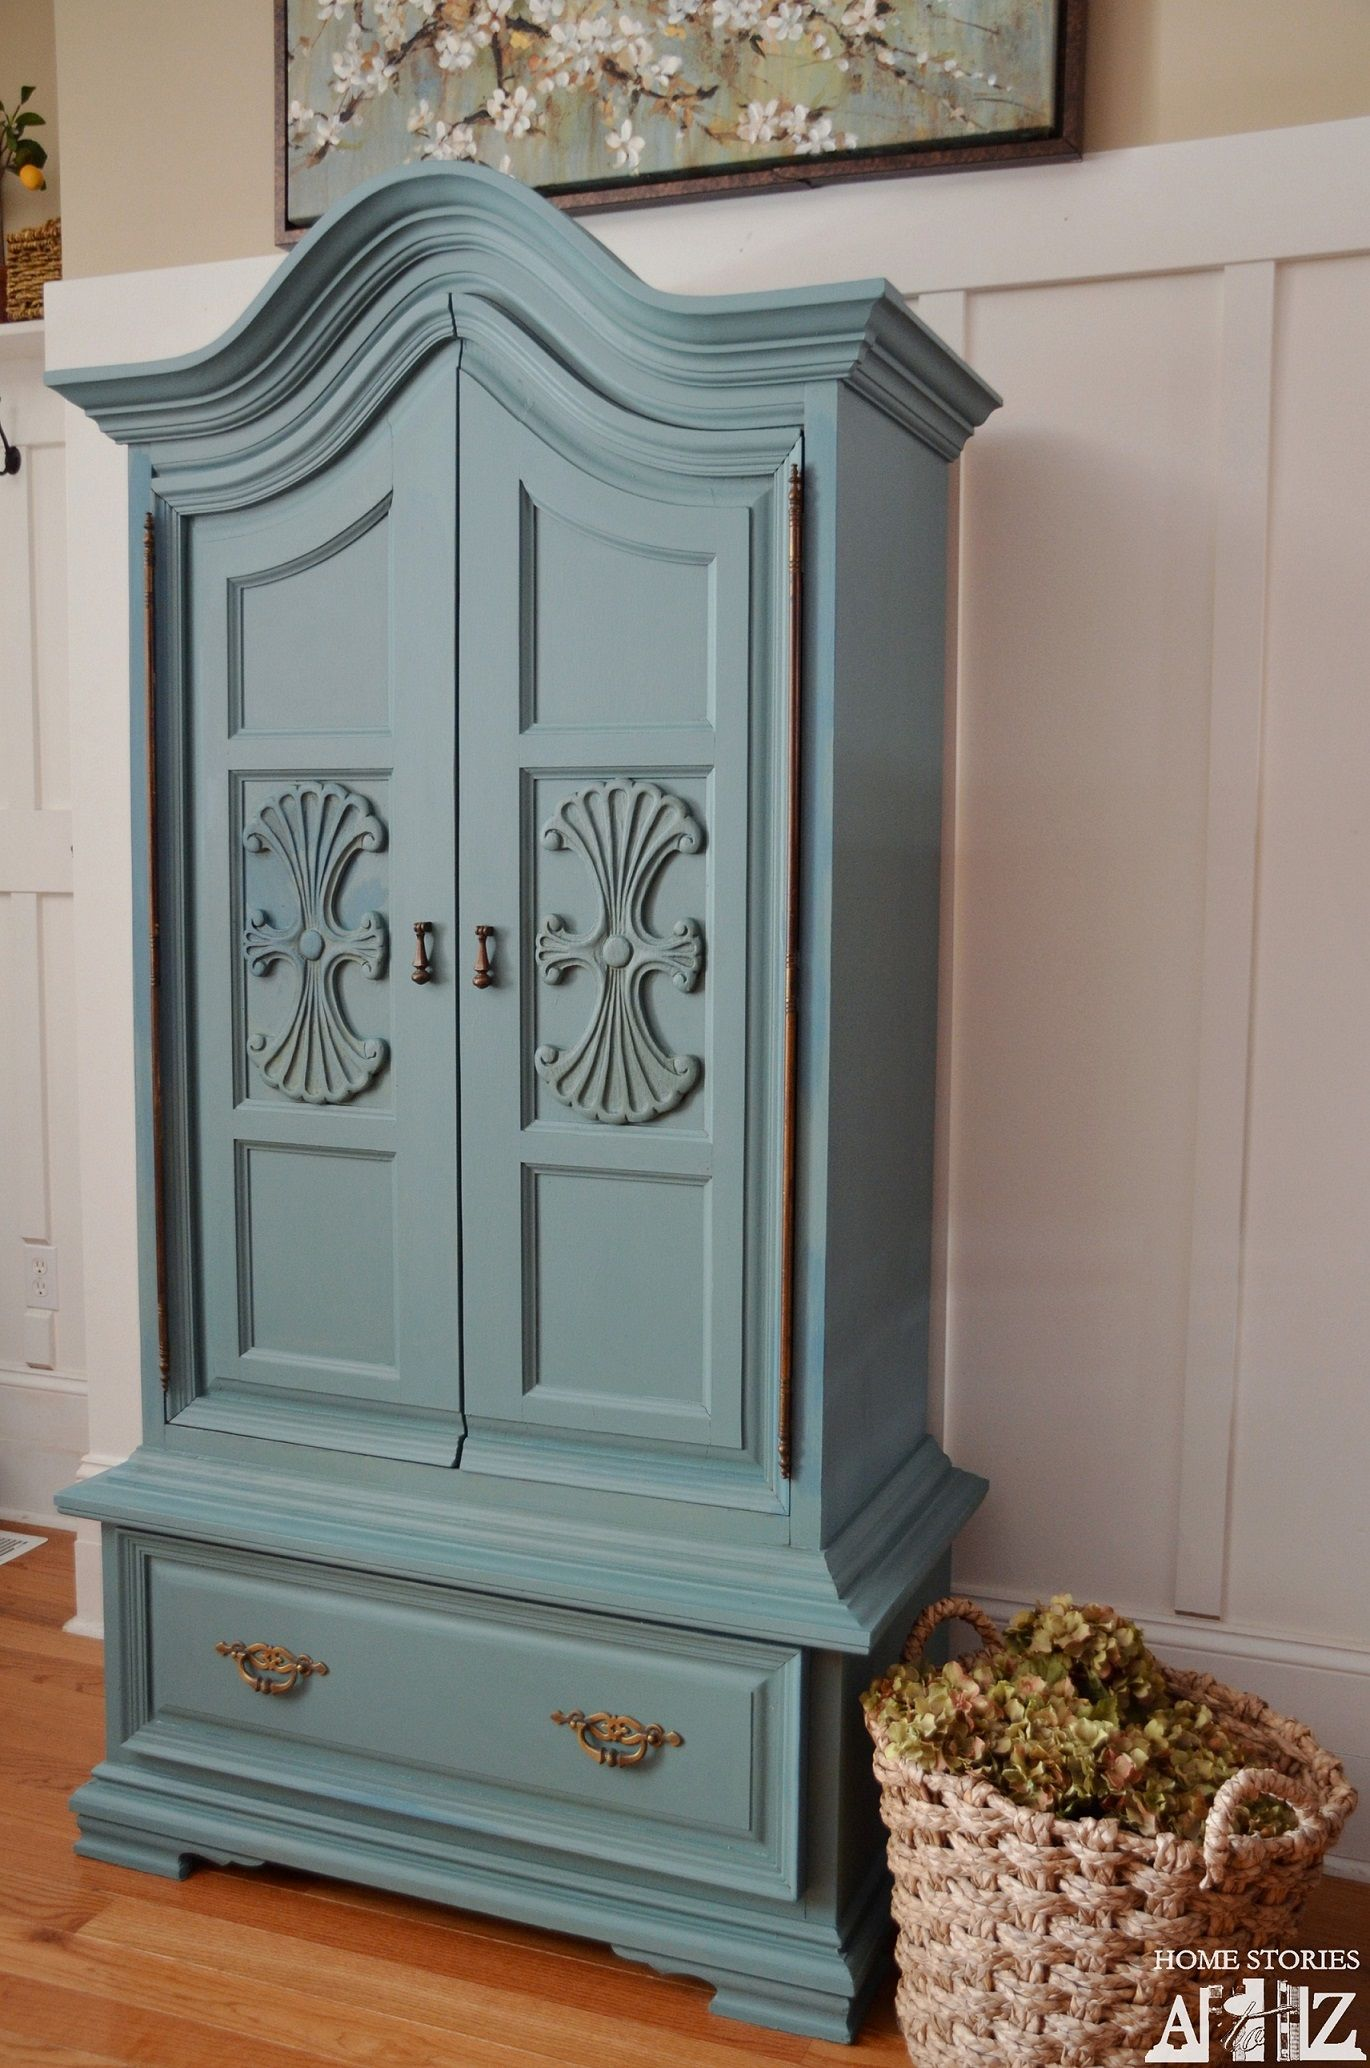 Beau How To Paint An Armoire. Painted Blue Armoire In Squires Squires Henson  Mustard Seed Kitchen Scale Milk Paint By Nativ Nativ Hunter {before U0026 After}